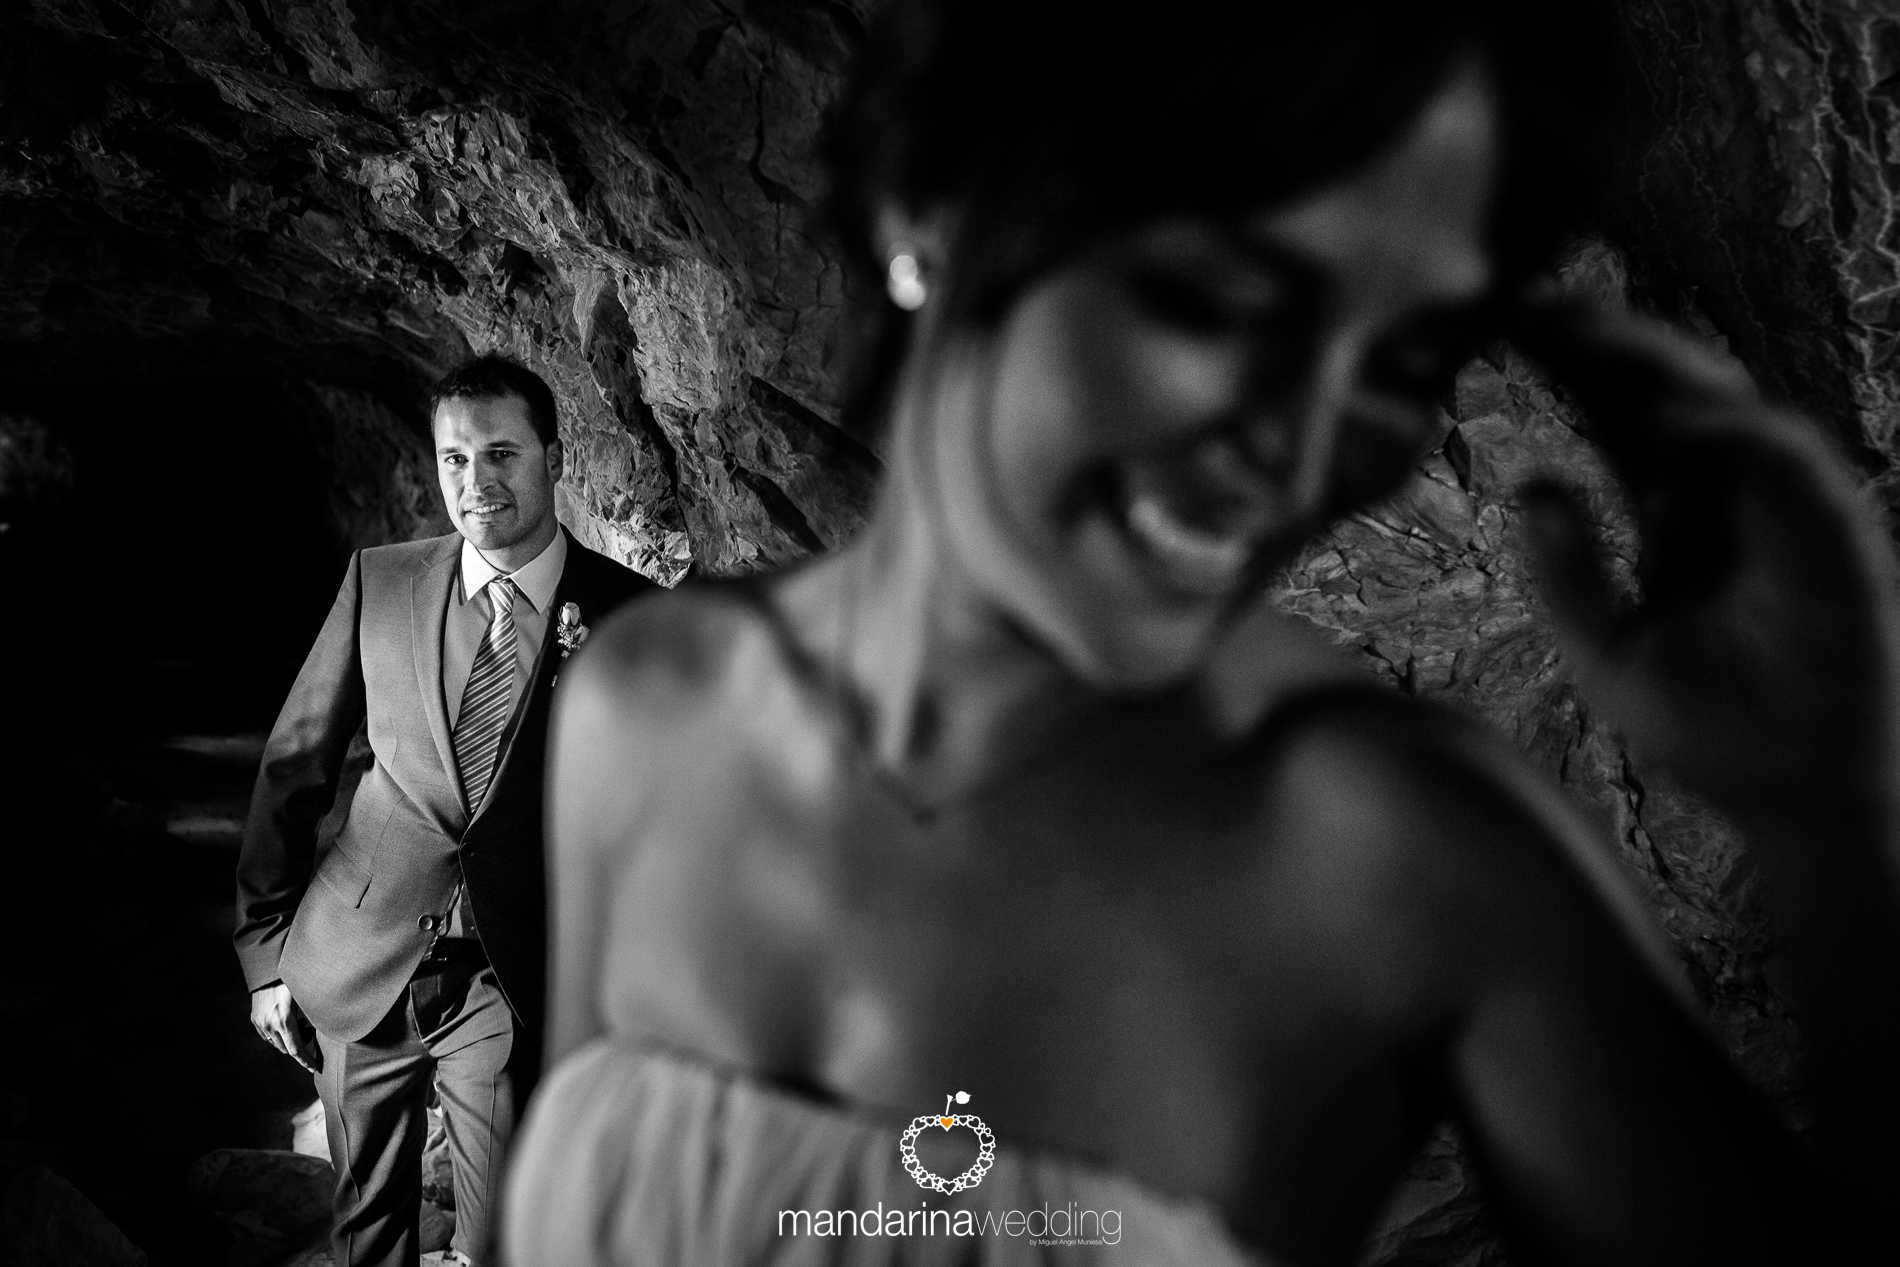 mandarina wedding_32